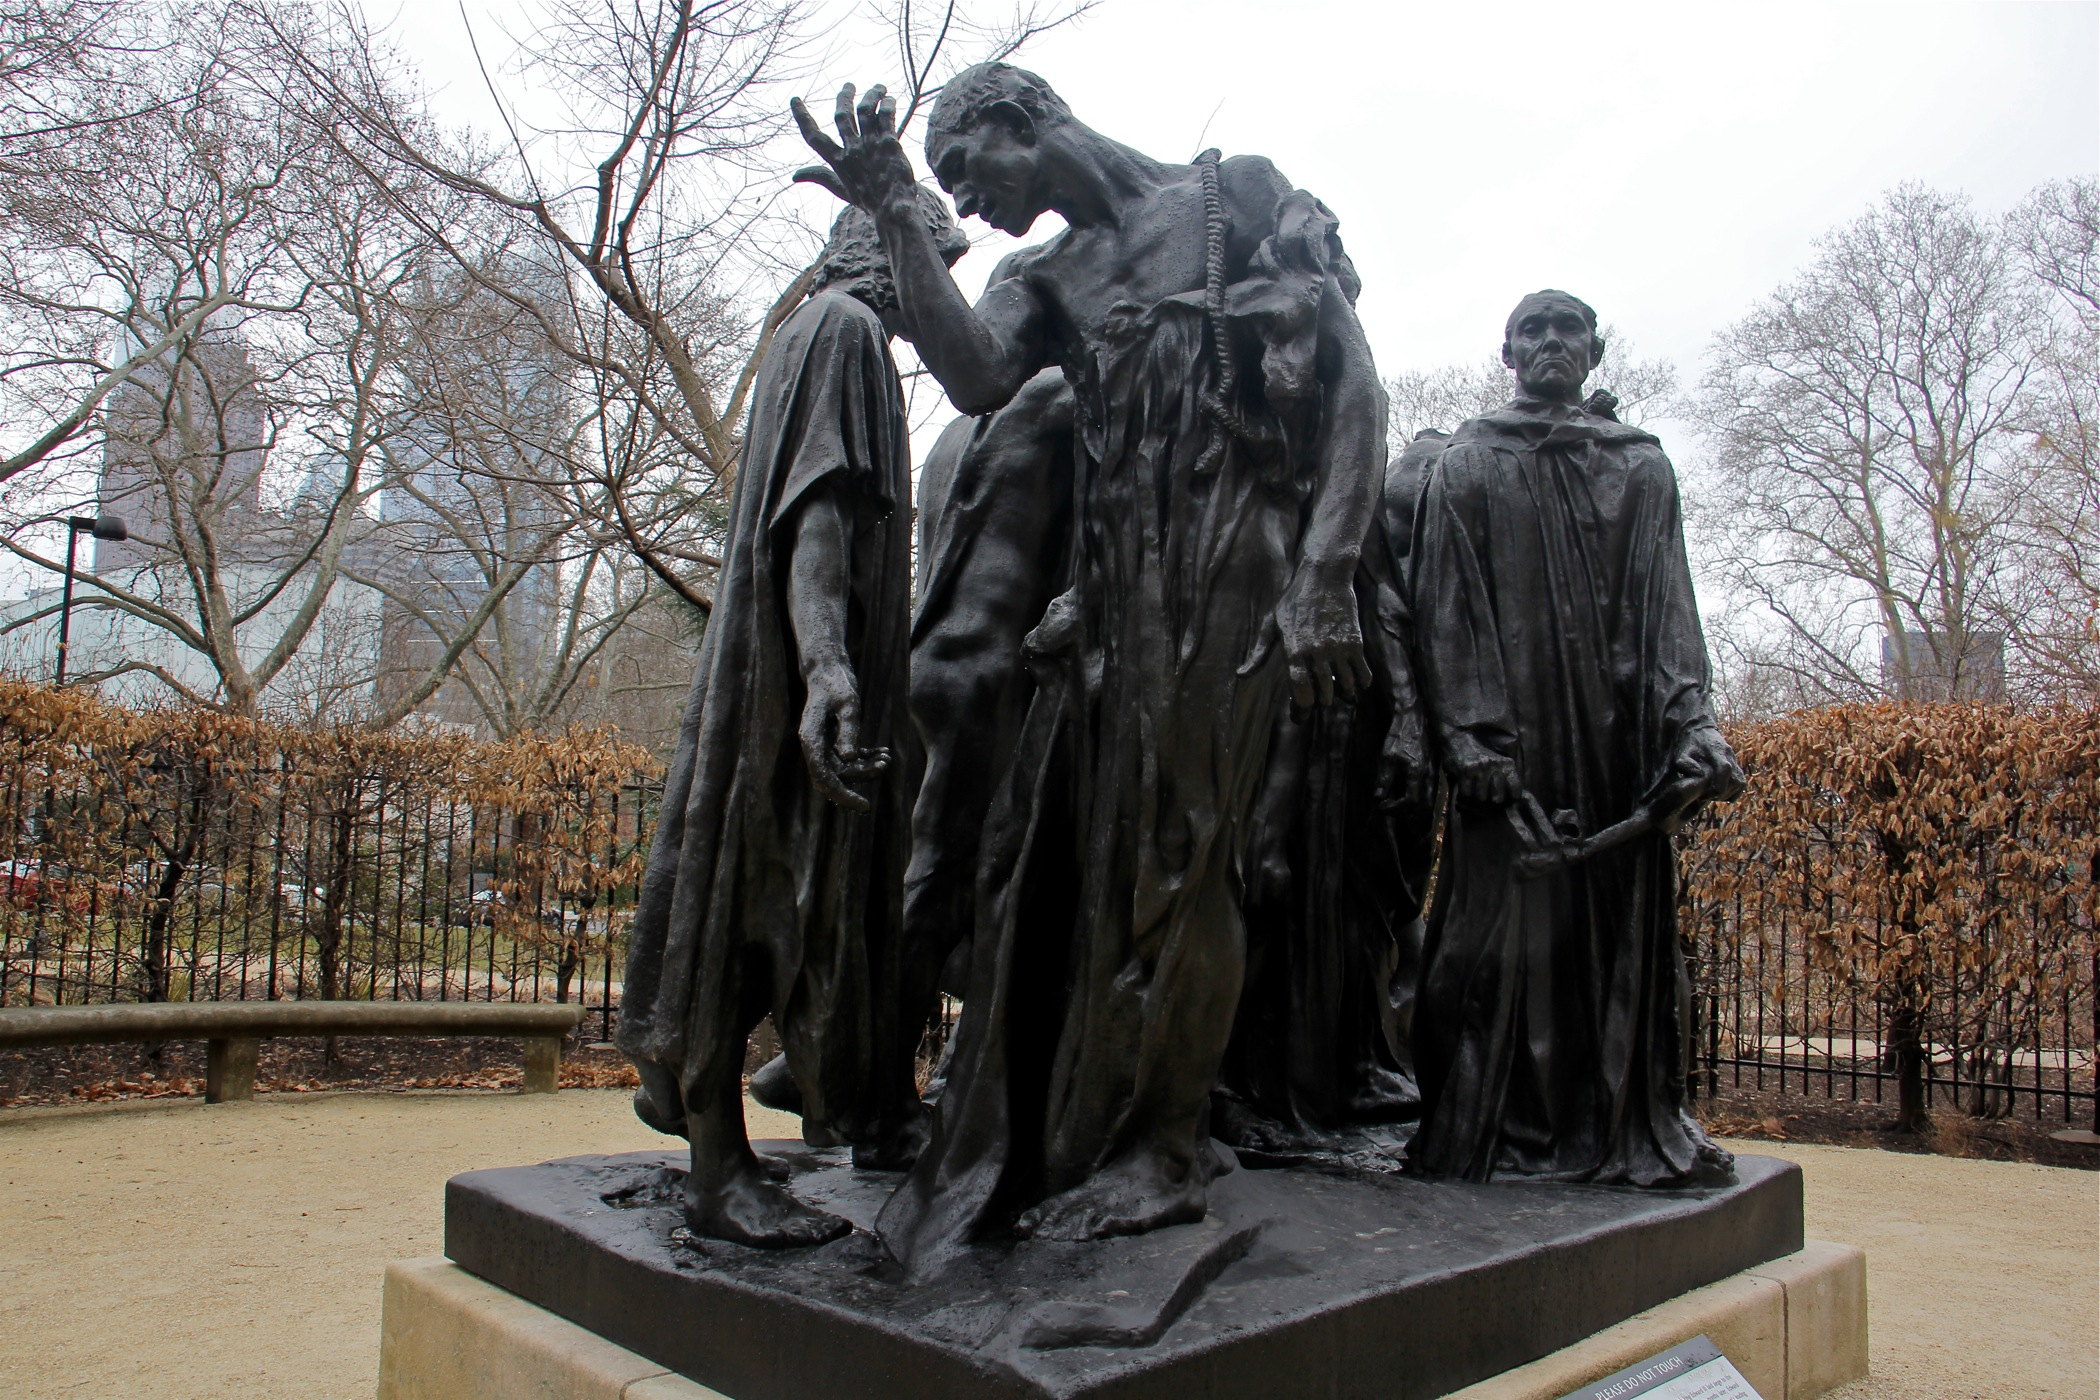 """The Burghers of Calais,"" commemorating an episode during the Hundred Years' War between England and France, is one of the most successful of Rodin's public monuments."